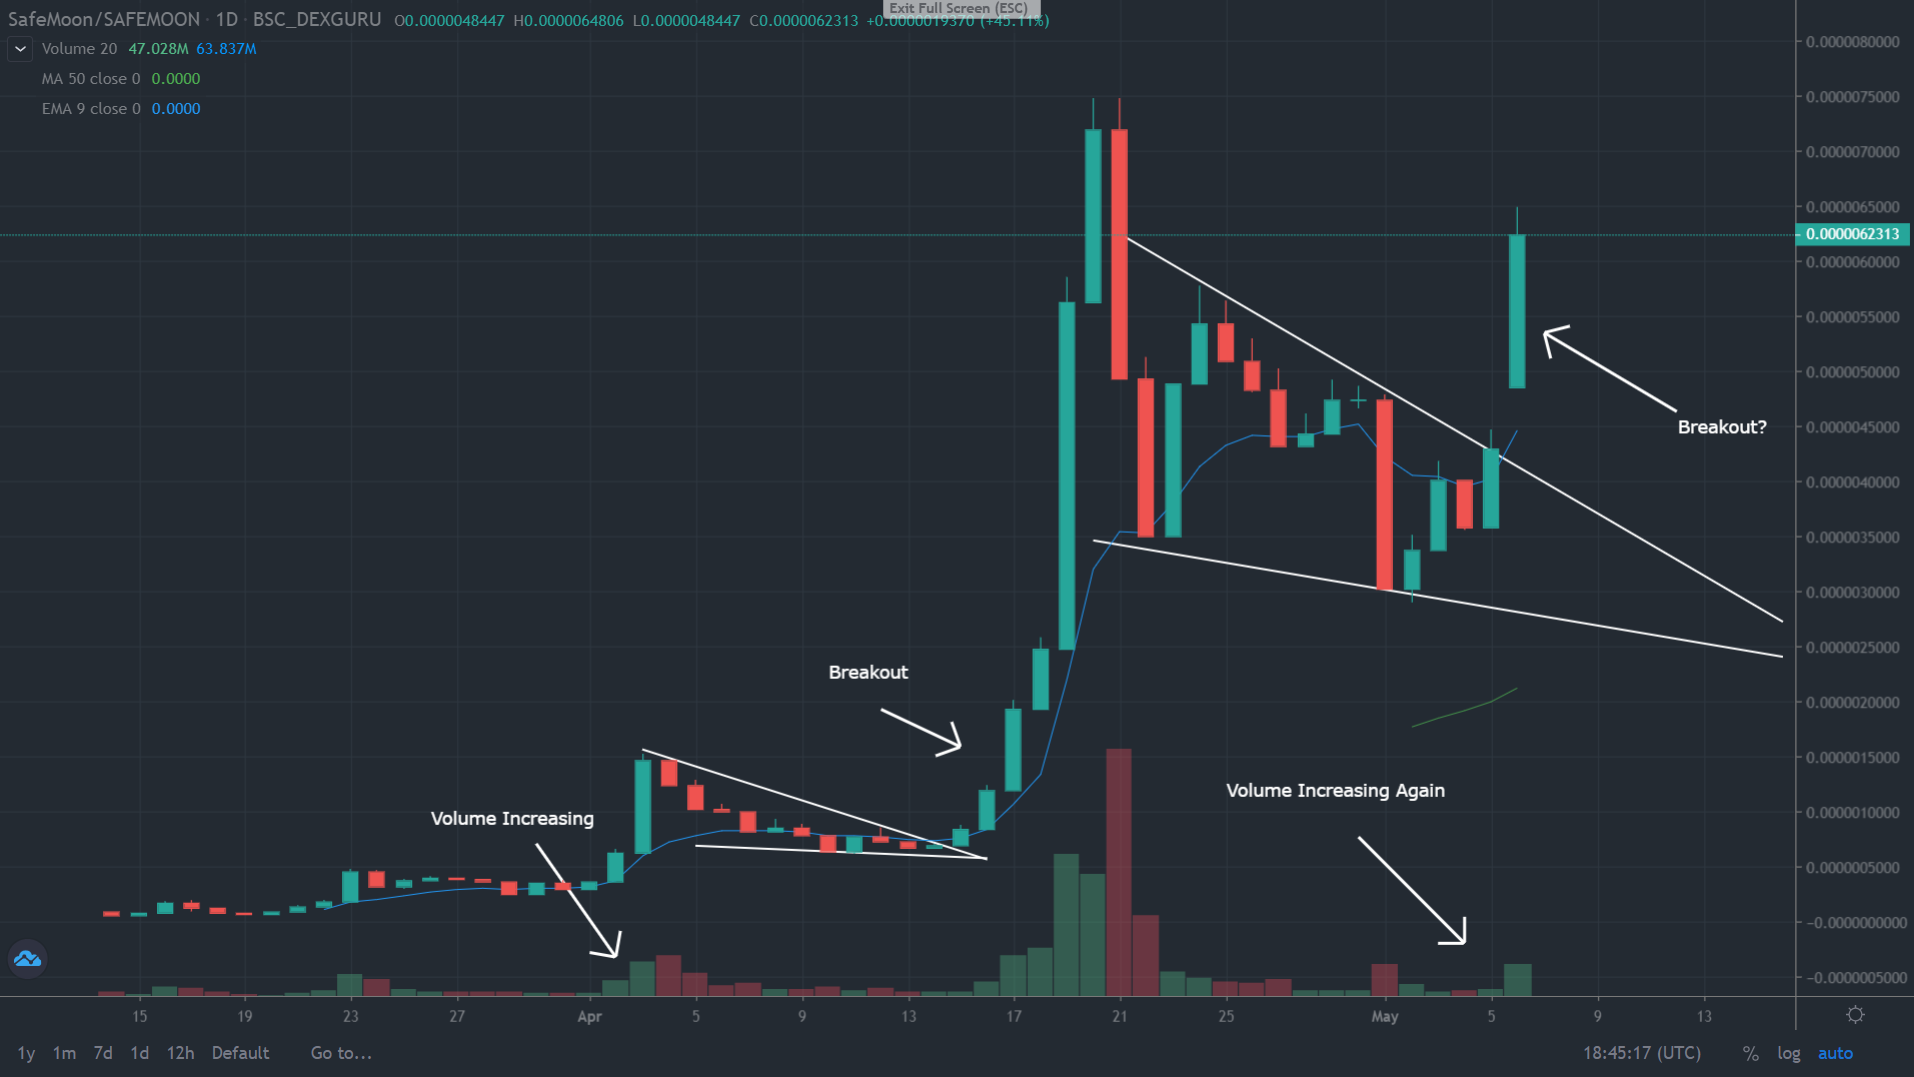 Safemoon Is Heating Up Looks Ready To Break Out Again Benzinga